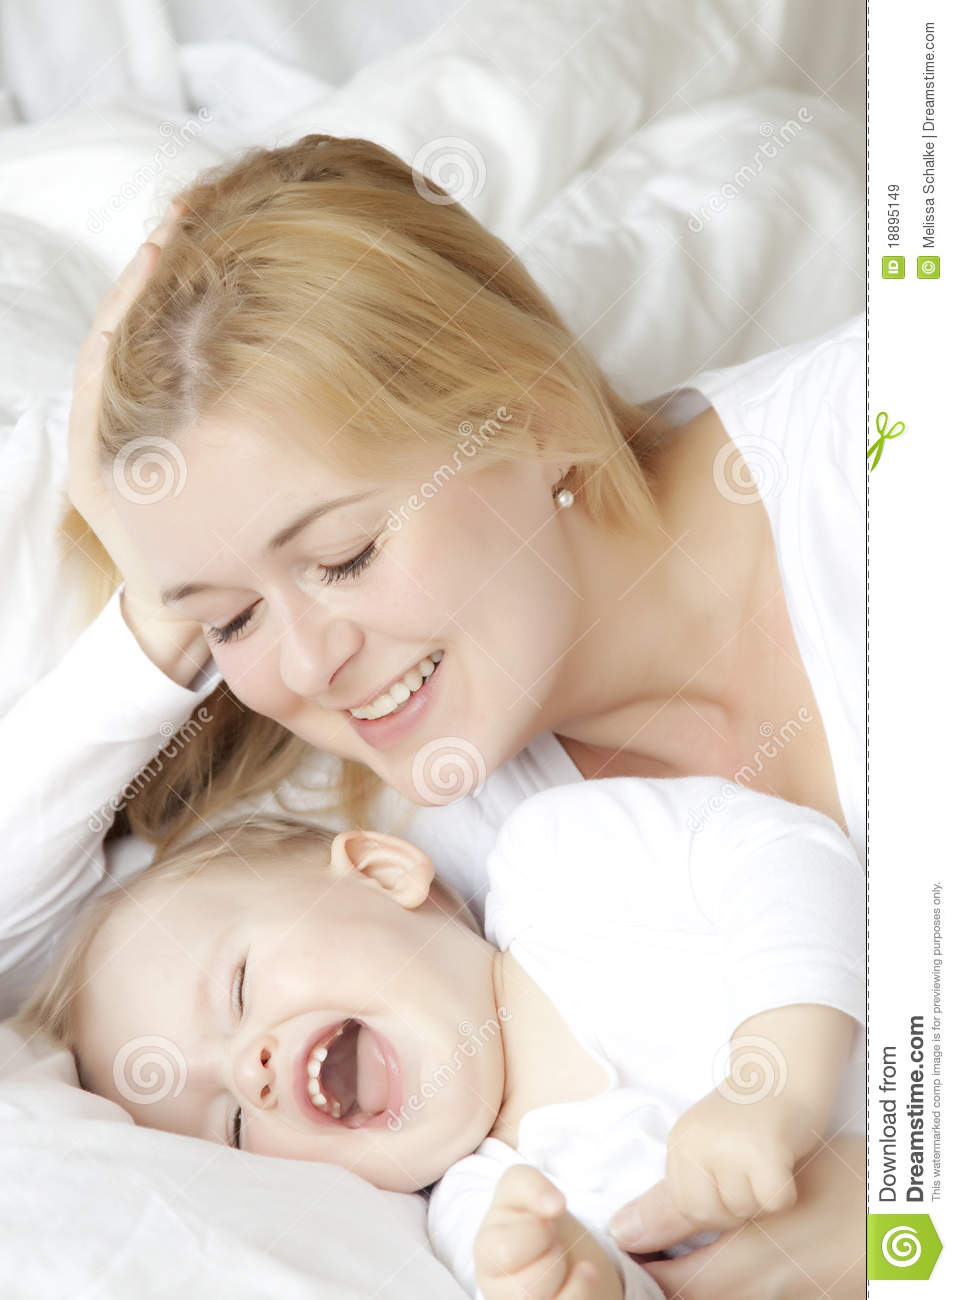 Mother And Child Royalty Free Stock Images - Image: 18895149